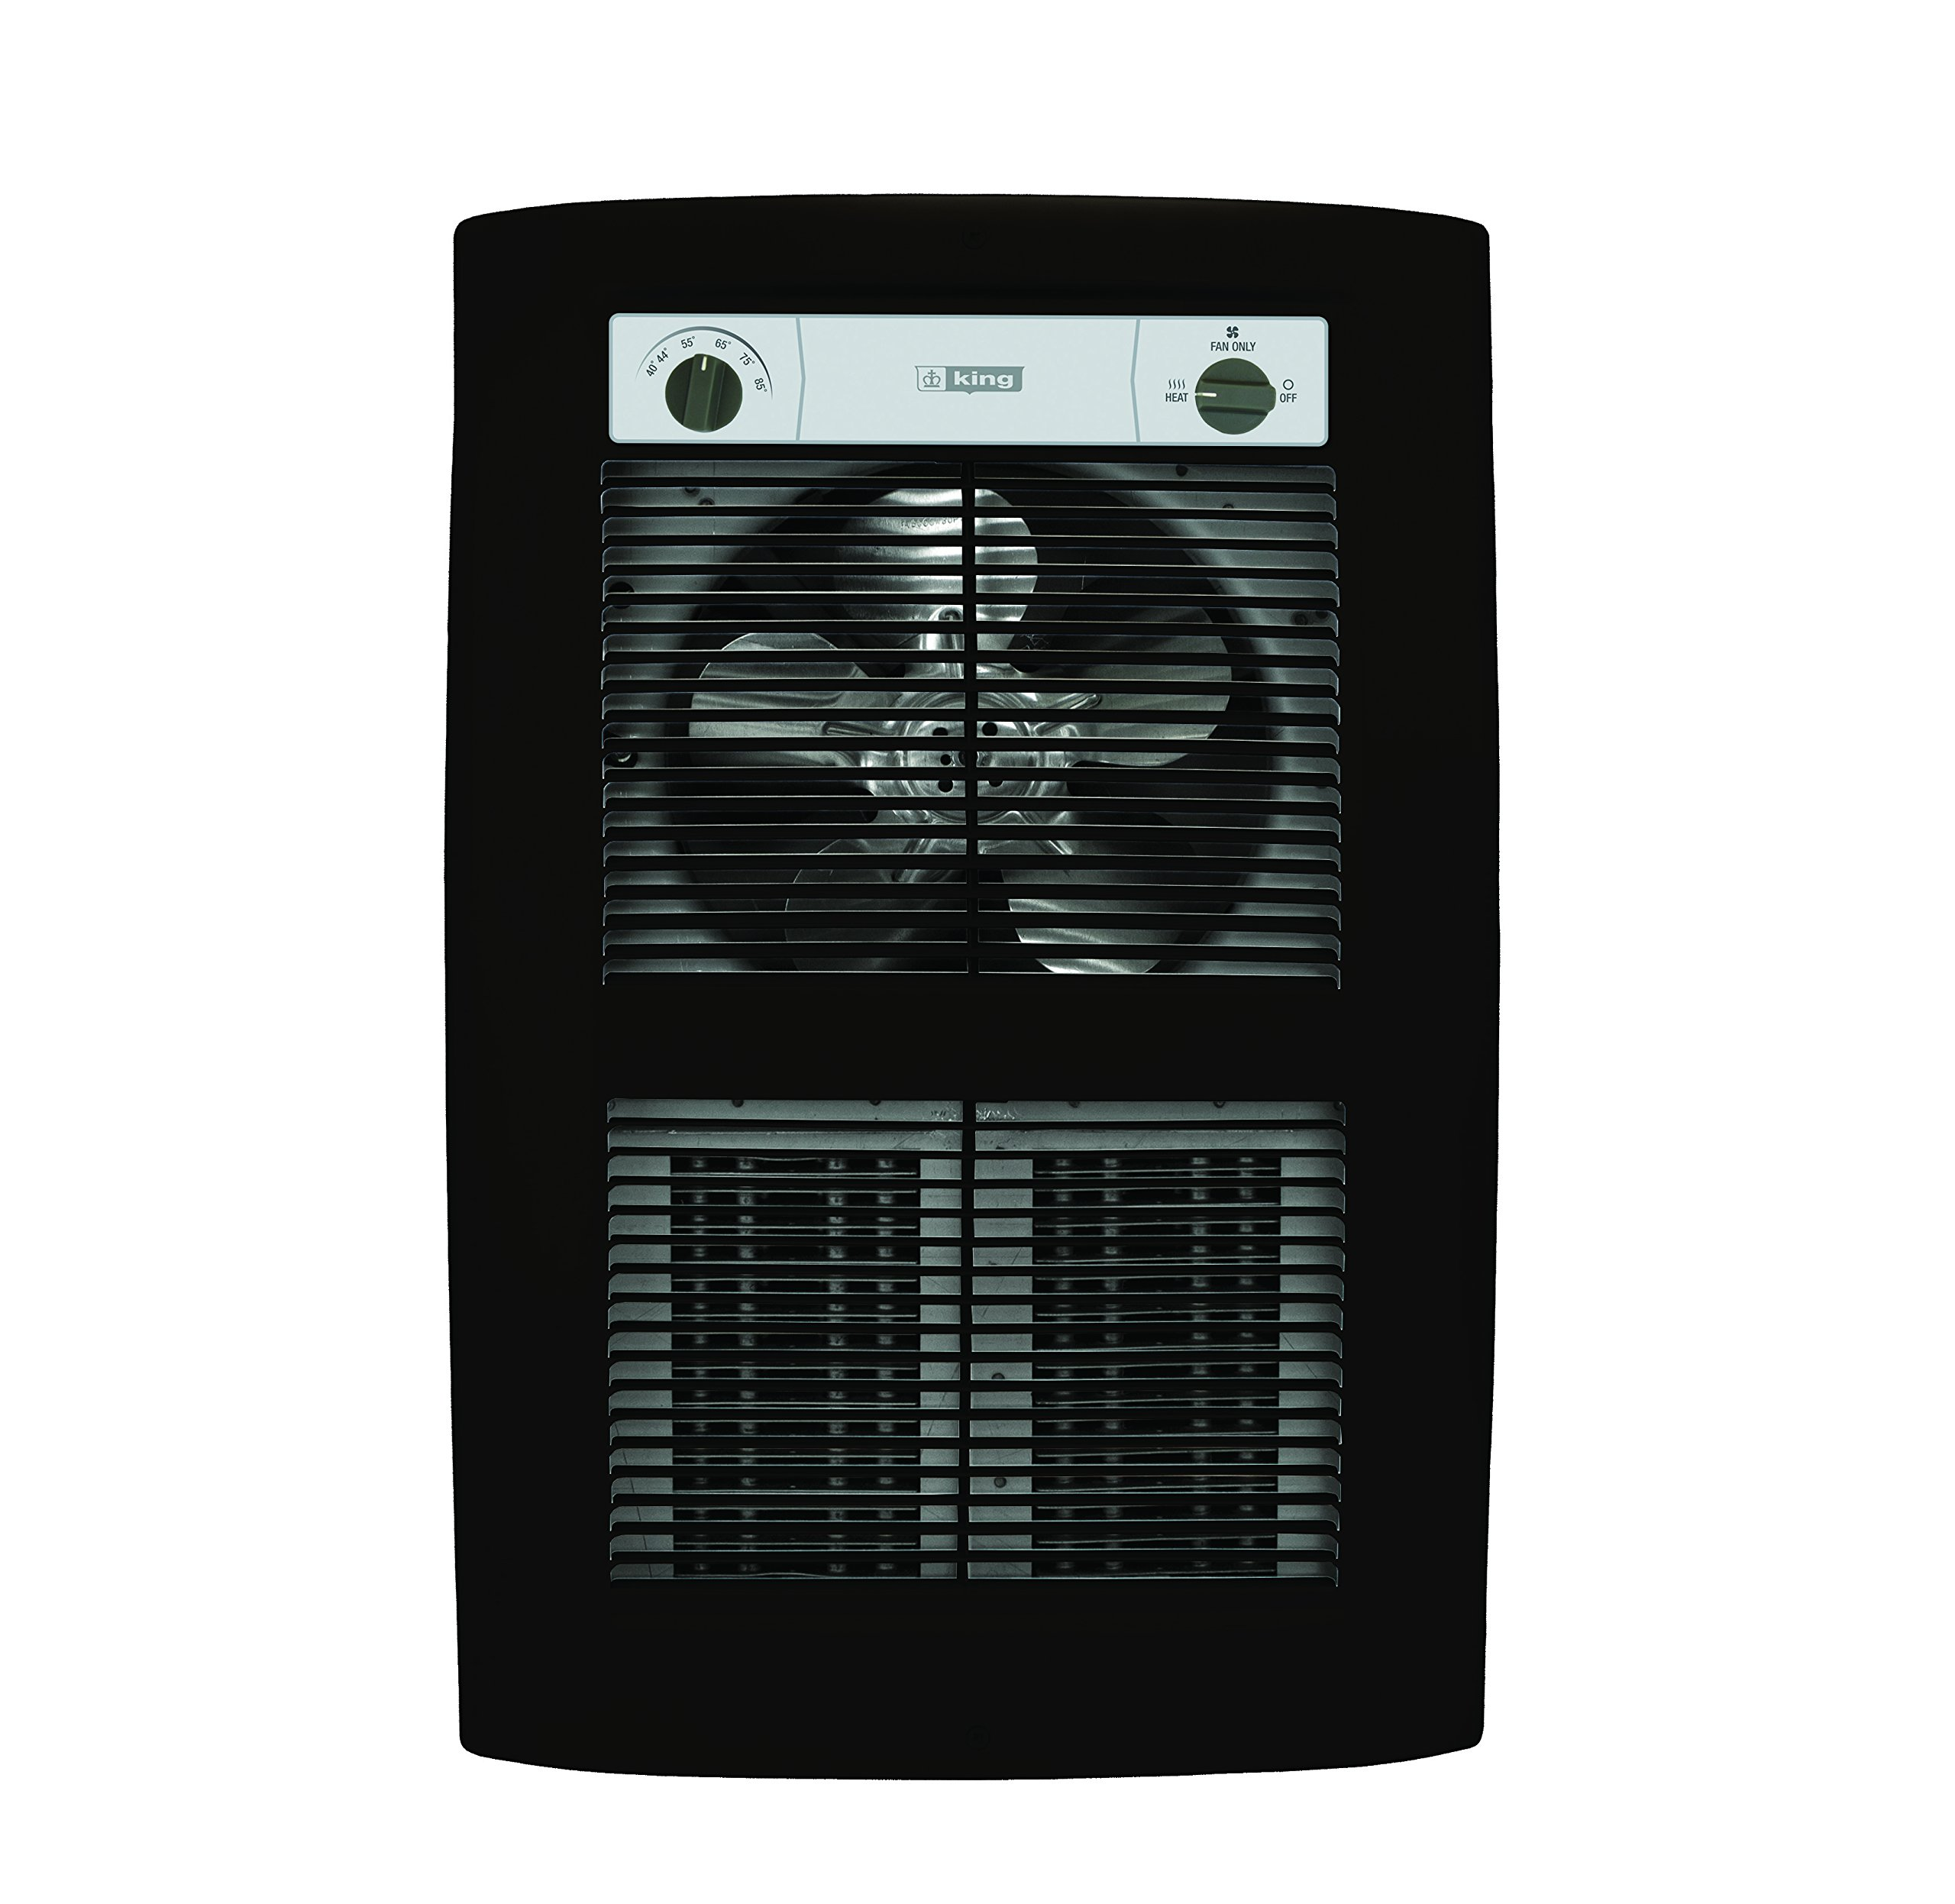 King Electric LPW2445T-S2-OB-R 4500W 240V Large Pic-a-Watt Series 2 Decorative Wall Heater, Oiled Bronze by King Electric